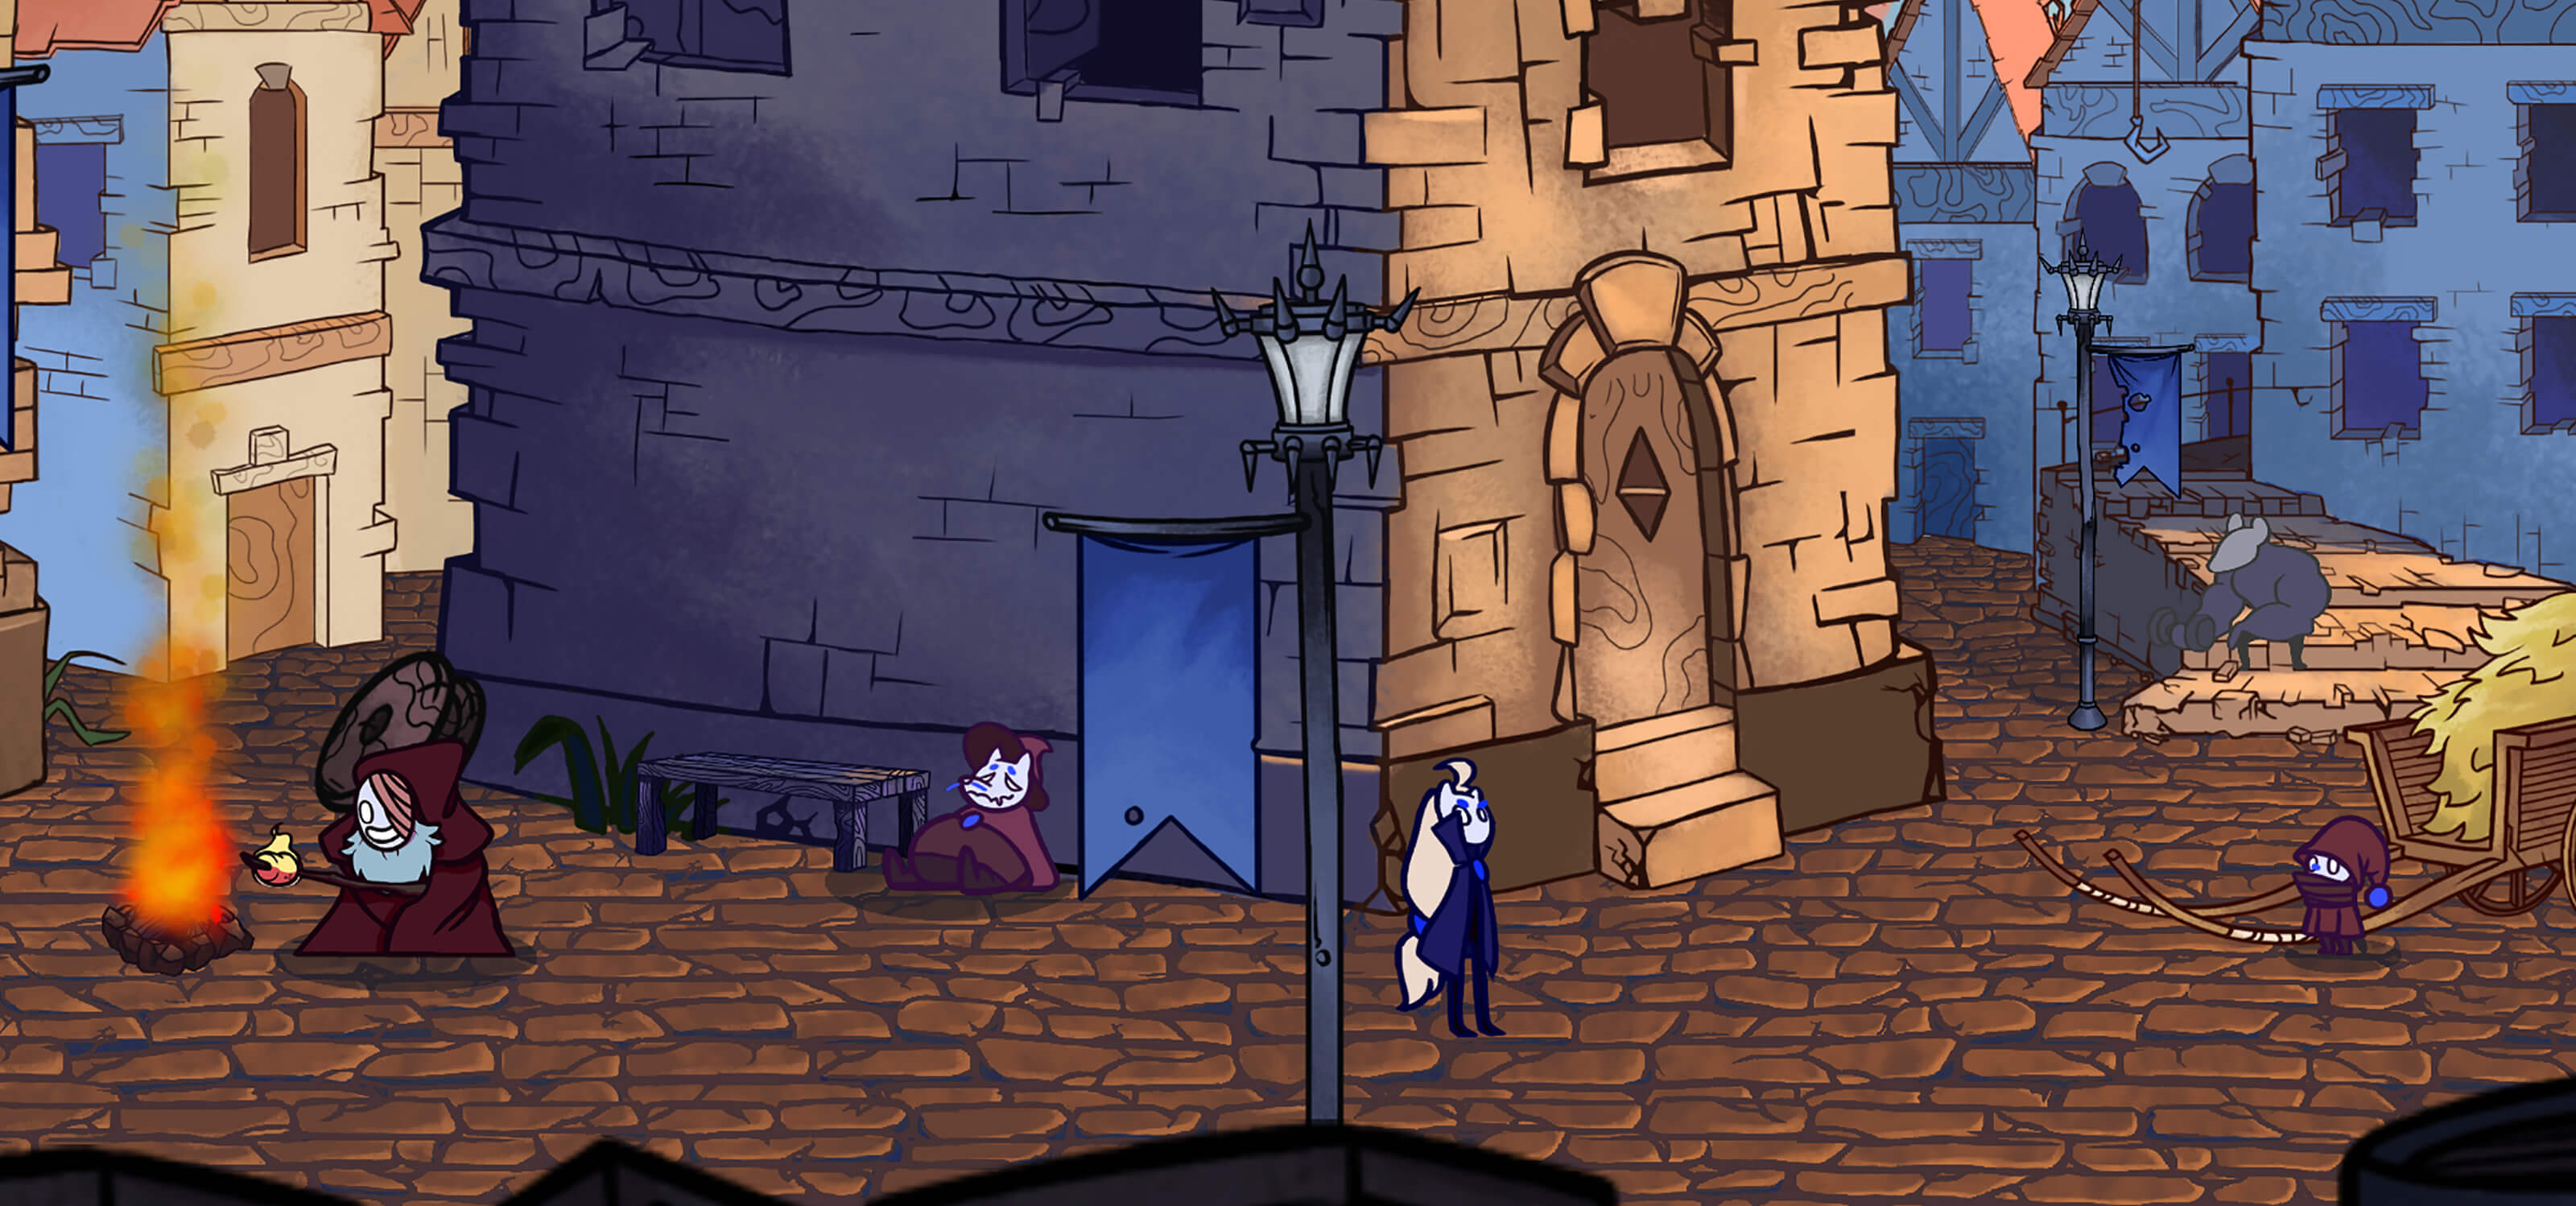 Screenshot from award-winning student game Jera, featuring a village scene with various characters